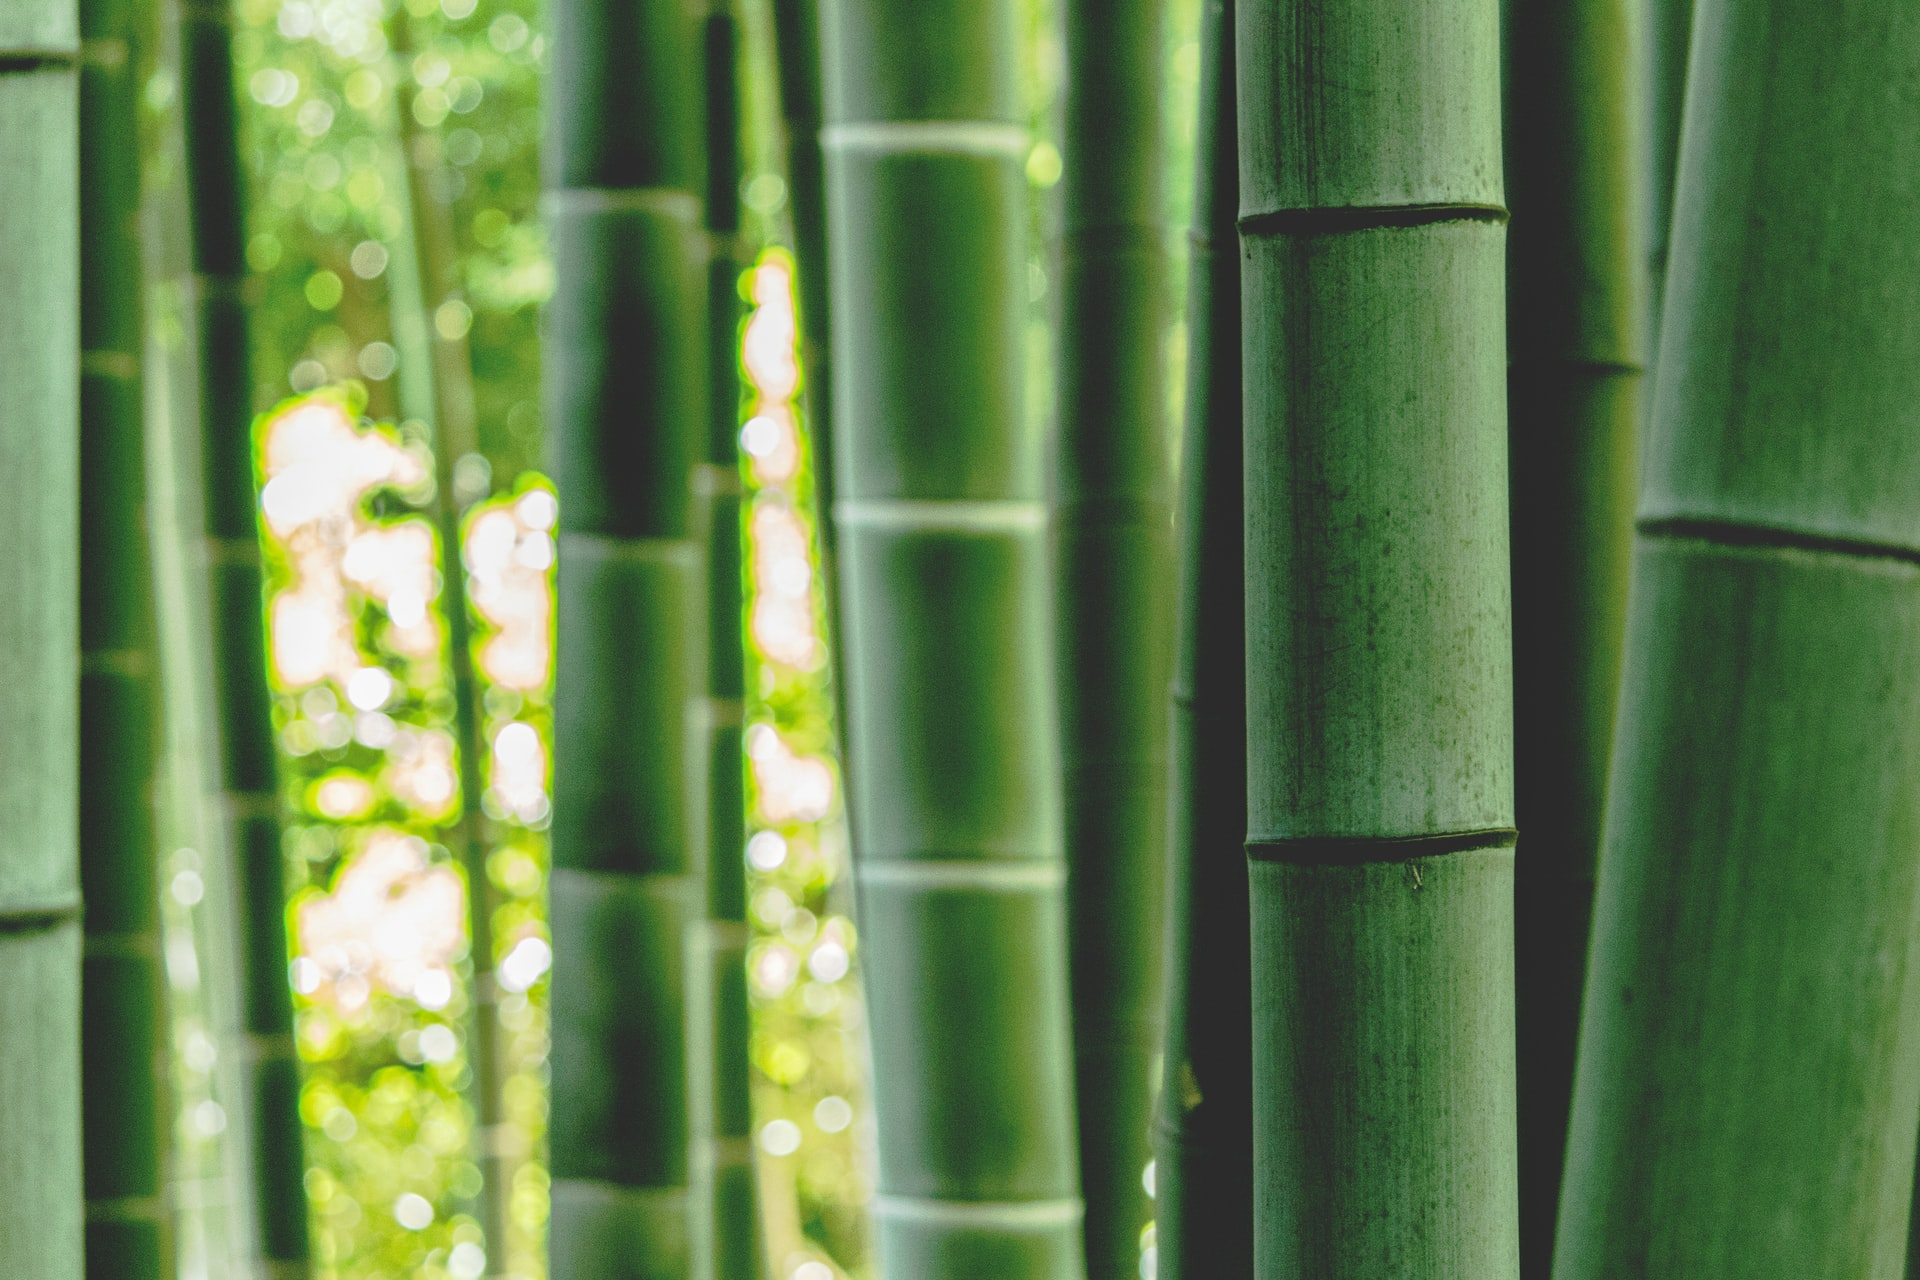 How to Grow Garden Bamboo